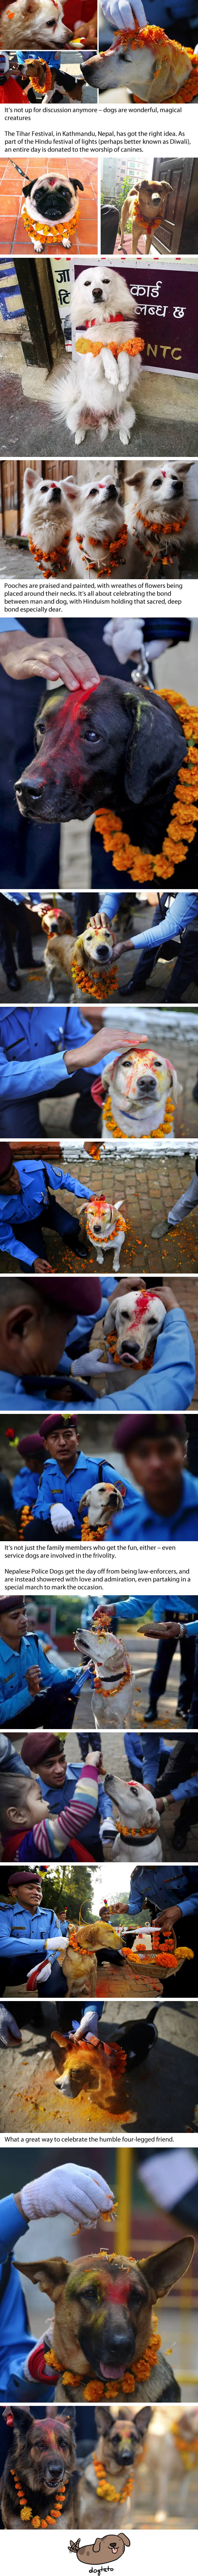 Dogs Are Blessed With Colourful Tilaka During The Tihar Festival In Nepal